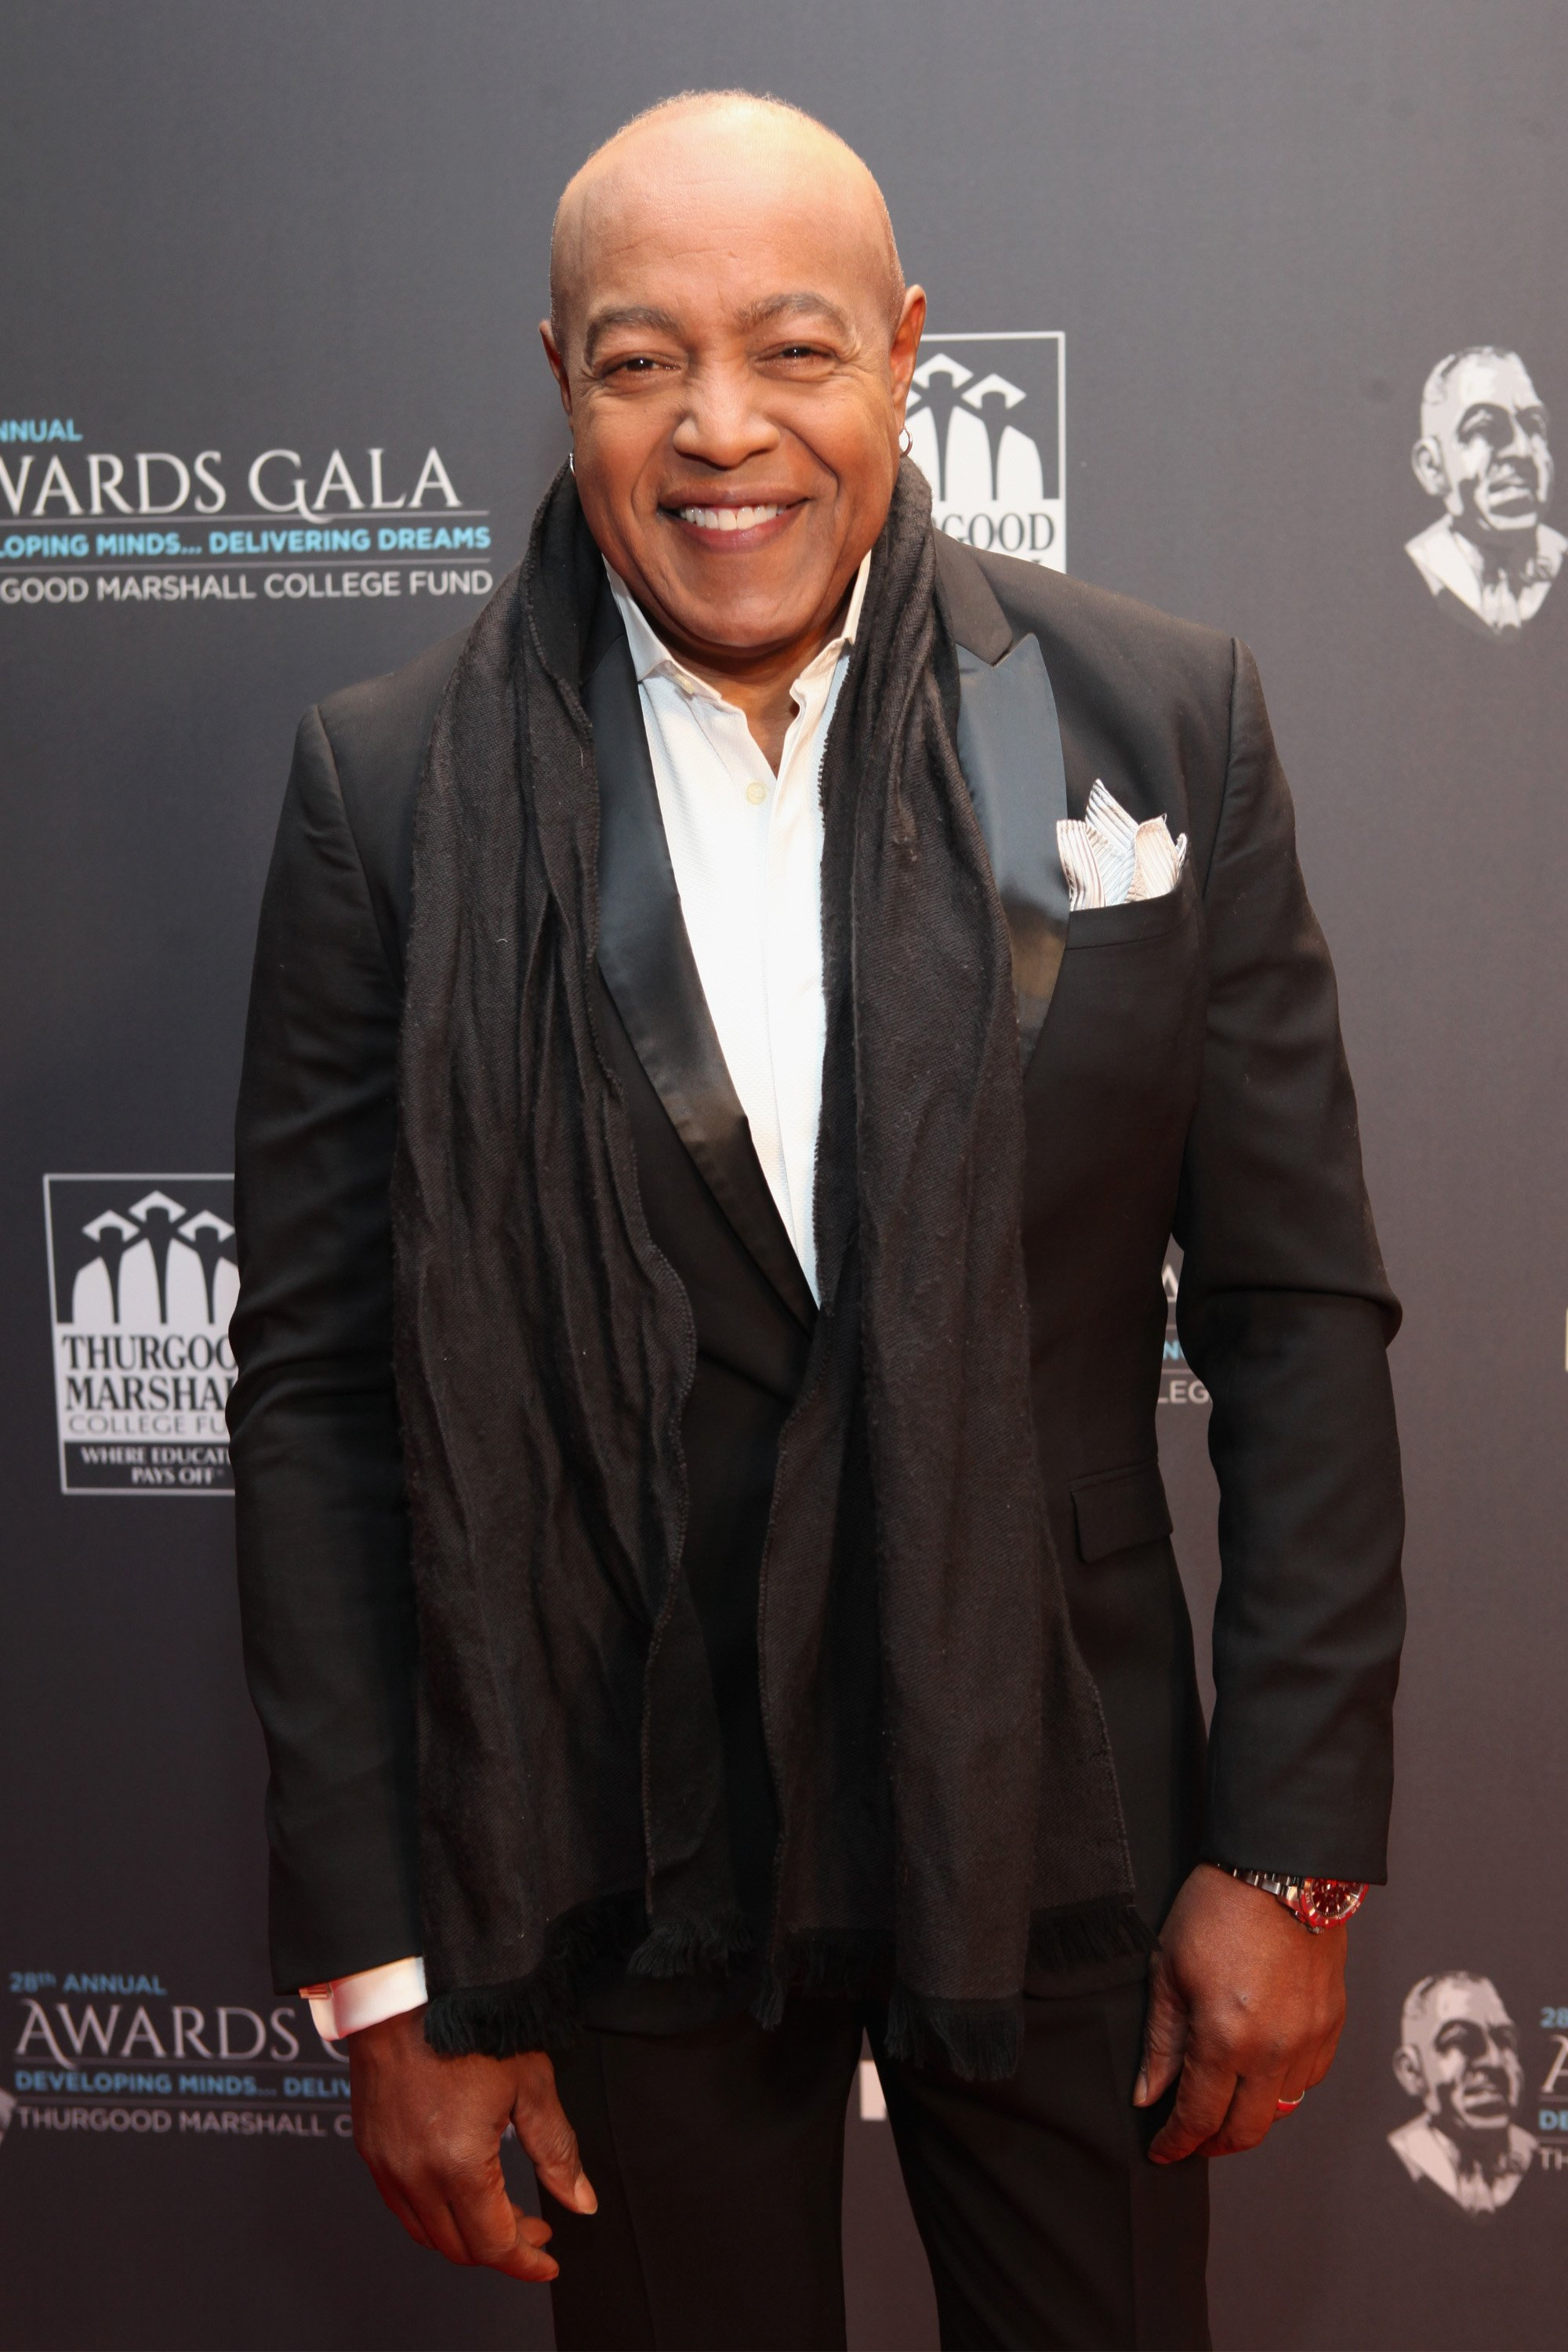 Peabo Bryson attending the Thurgood Marshall College Fund 28th Annual Awards Gala at Washington Hilton on November 21, 2016 in Washington, DC.   Source: Getty